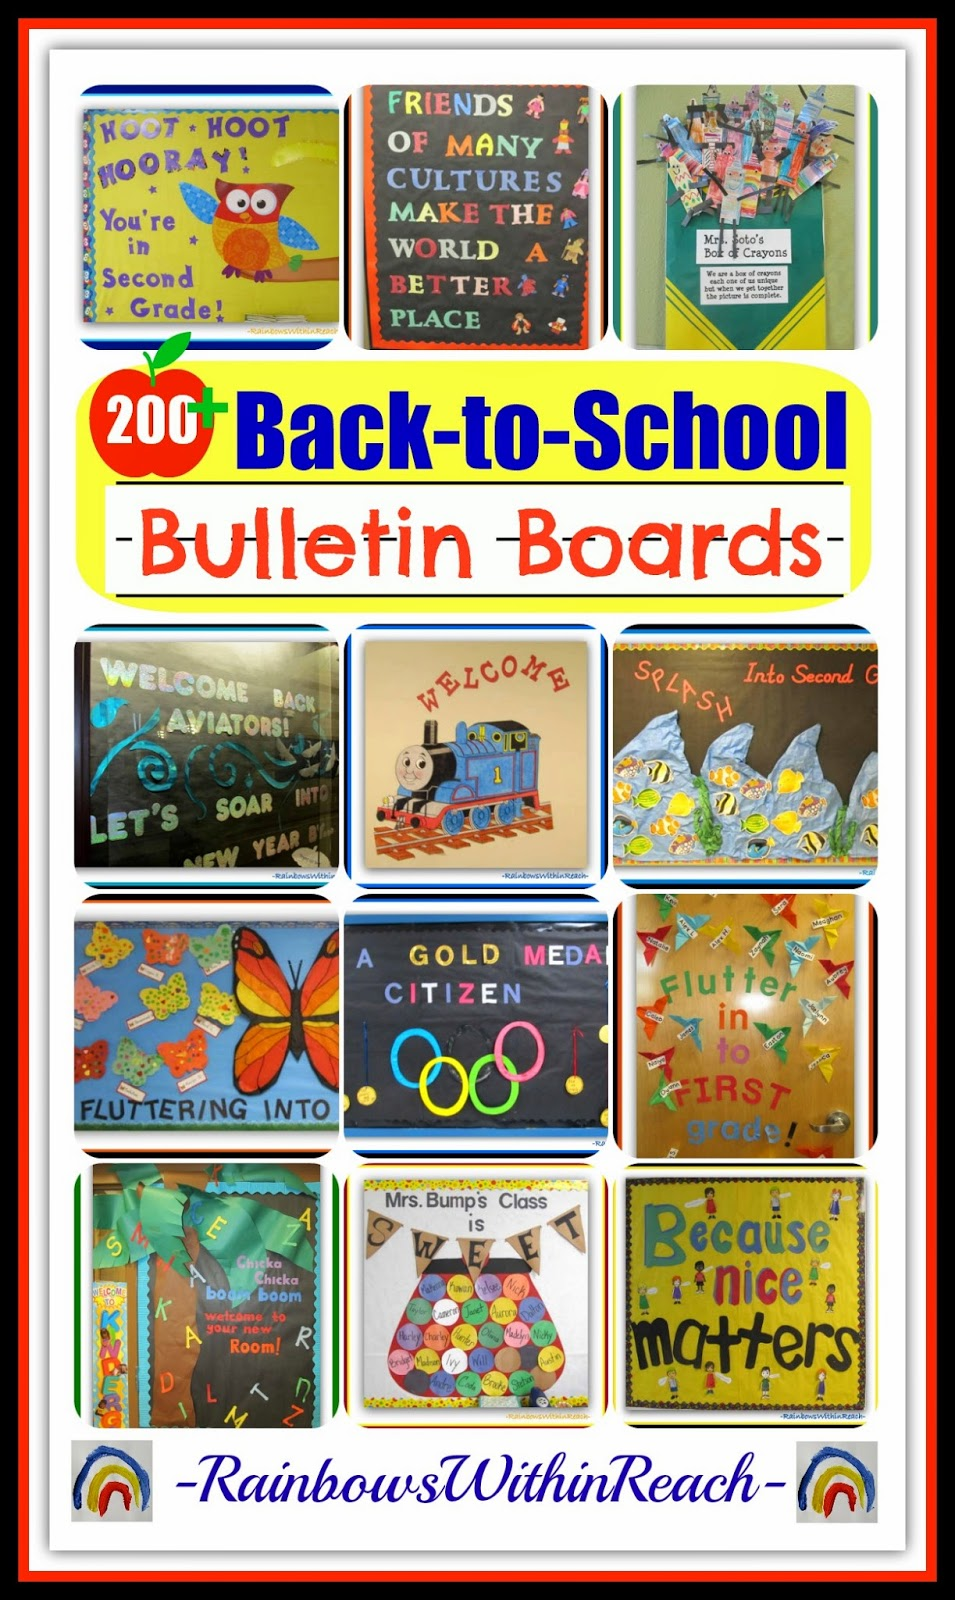 THE Collection of over 200 Back-to-School Bulletin Boards at RainbowsWithinReach